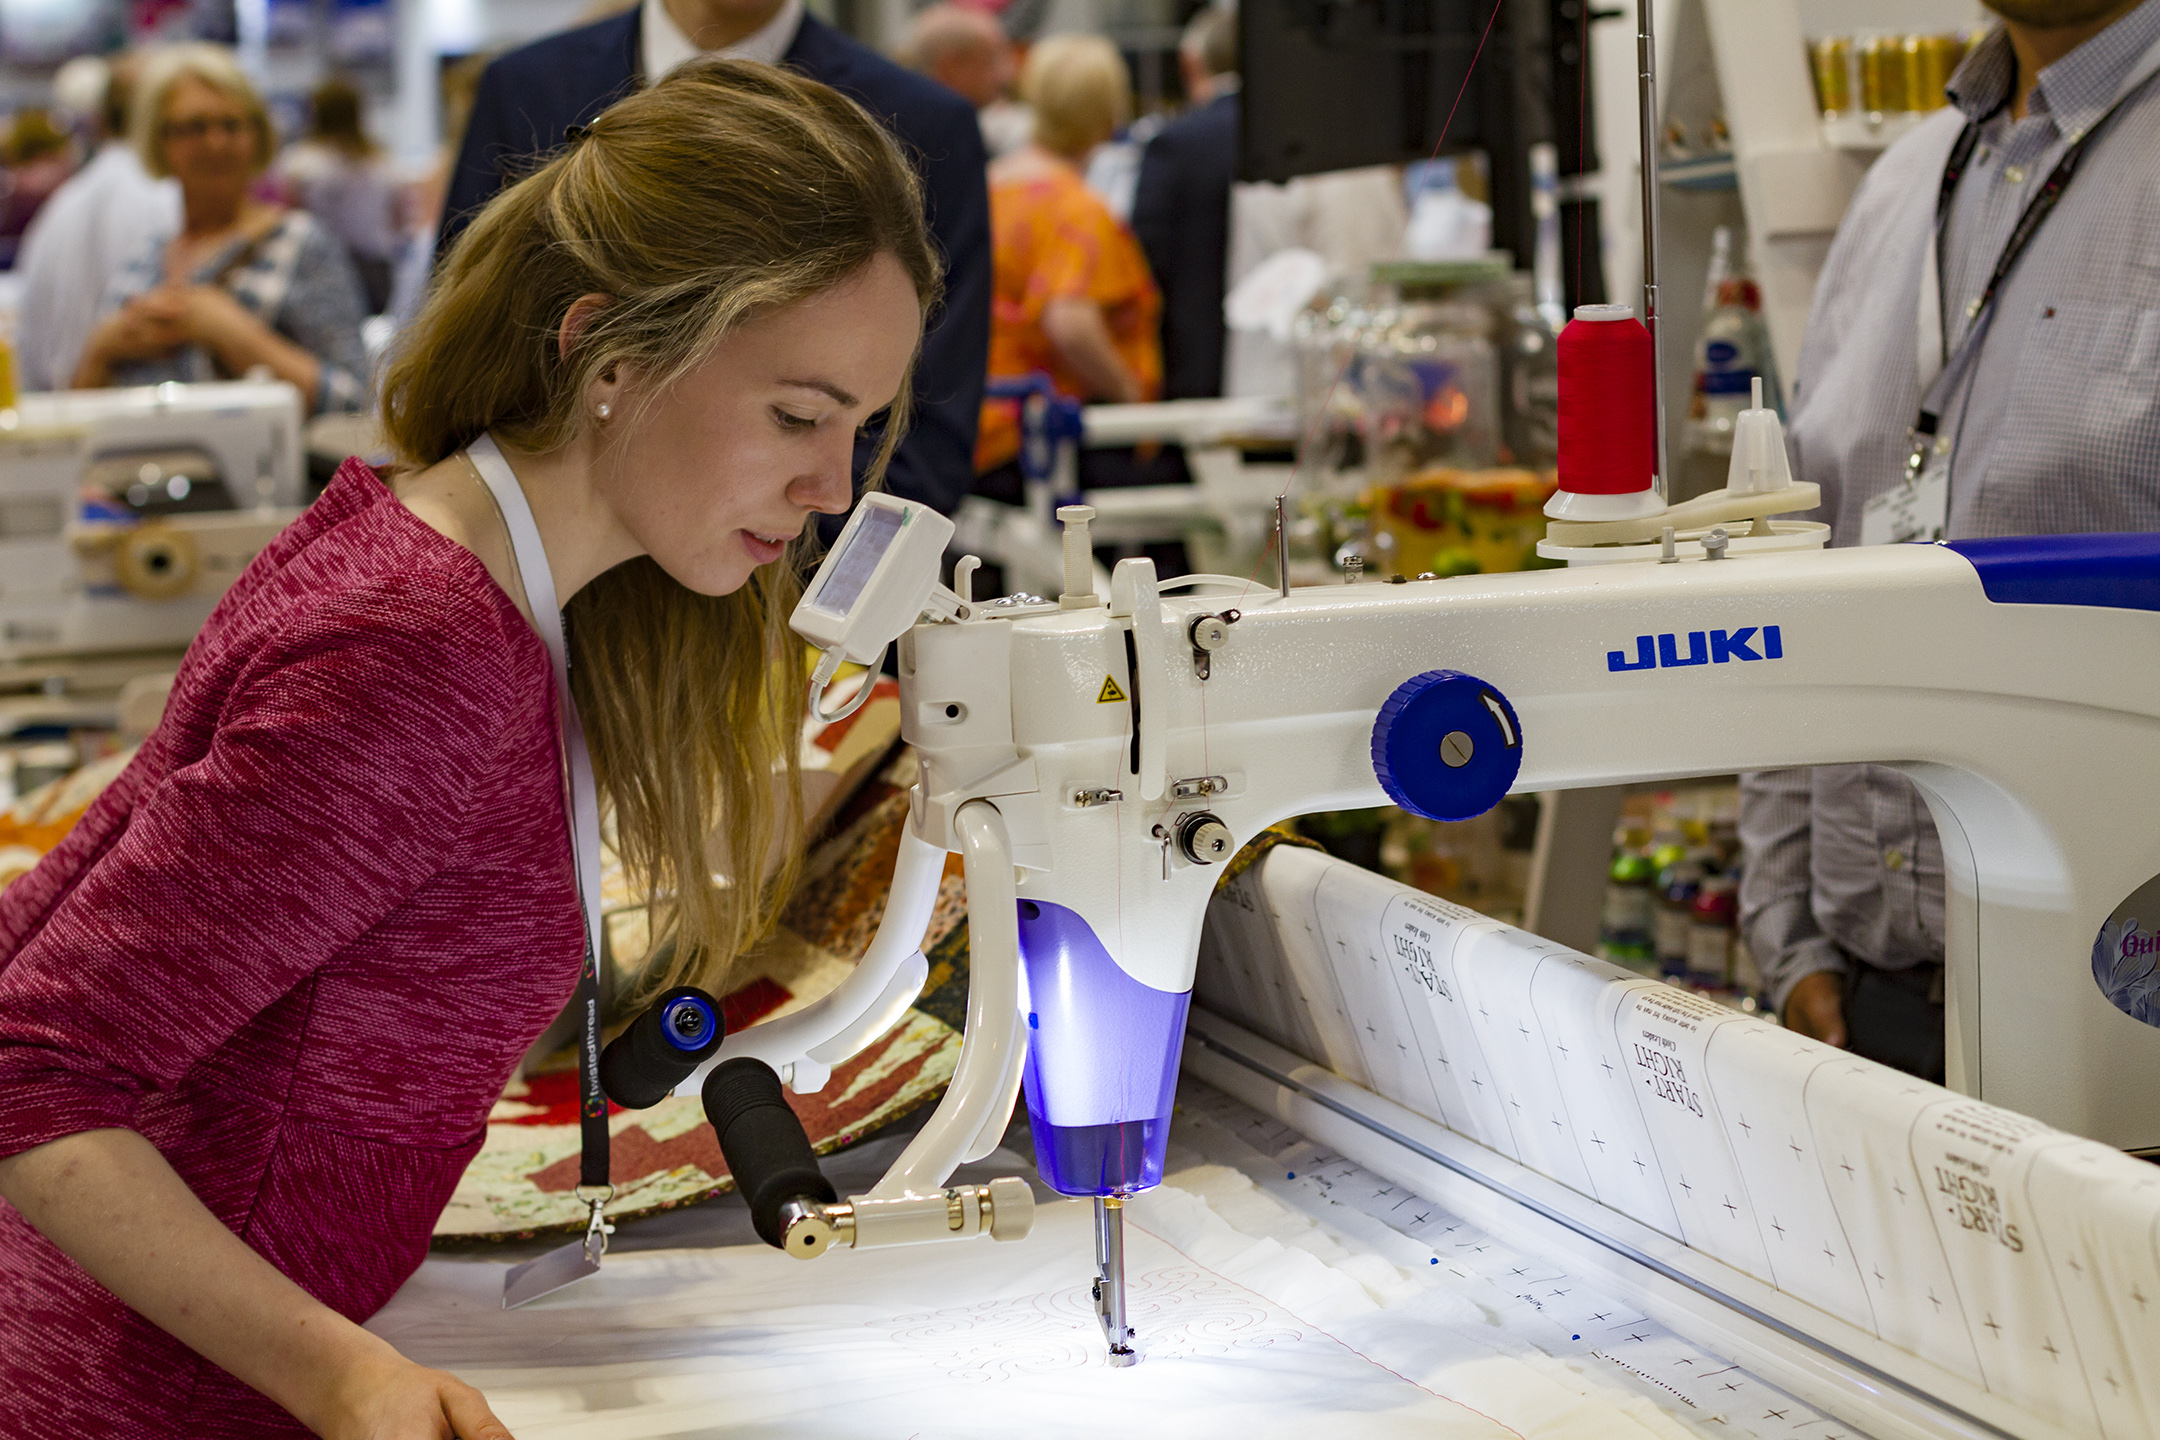 Try out the Juki Sewing Machines at the Festival of Quilts